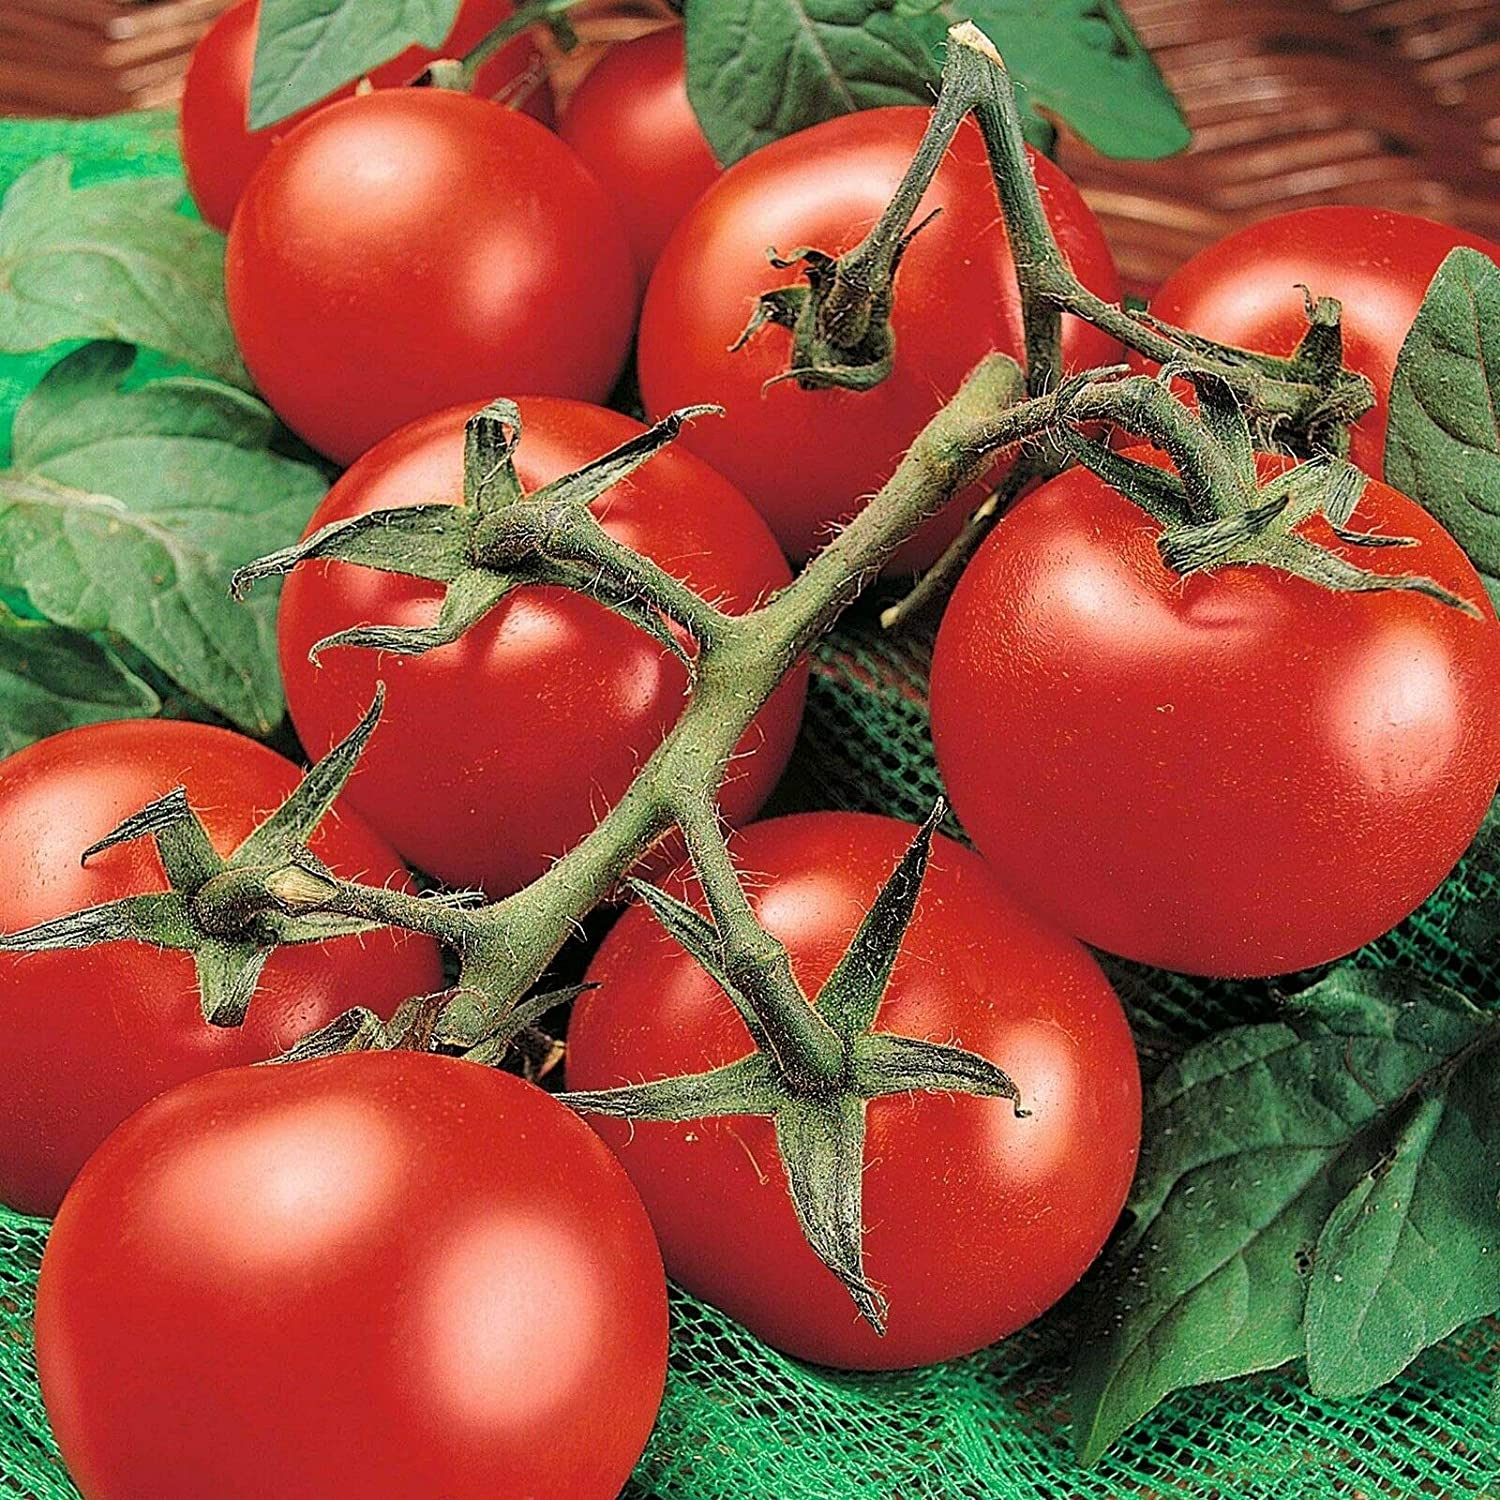 SmartMe - 1 2 Special Campaign oz Huge Moneymaker Heirloom Some reservation Ct Tomato